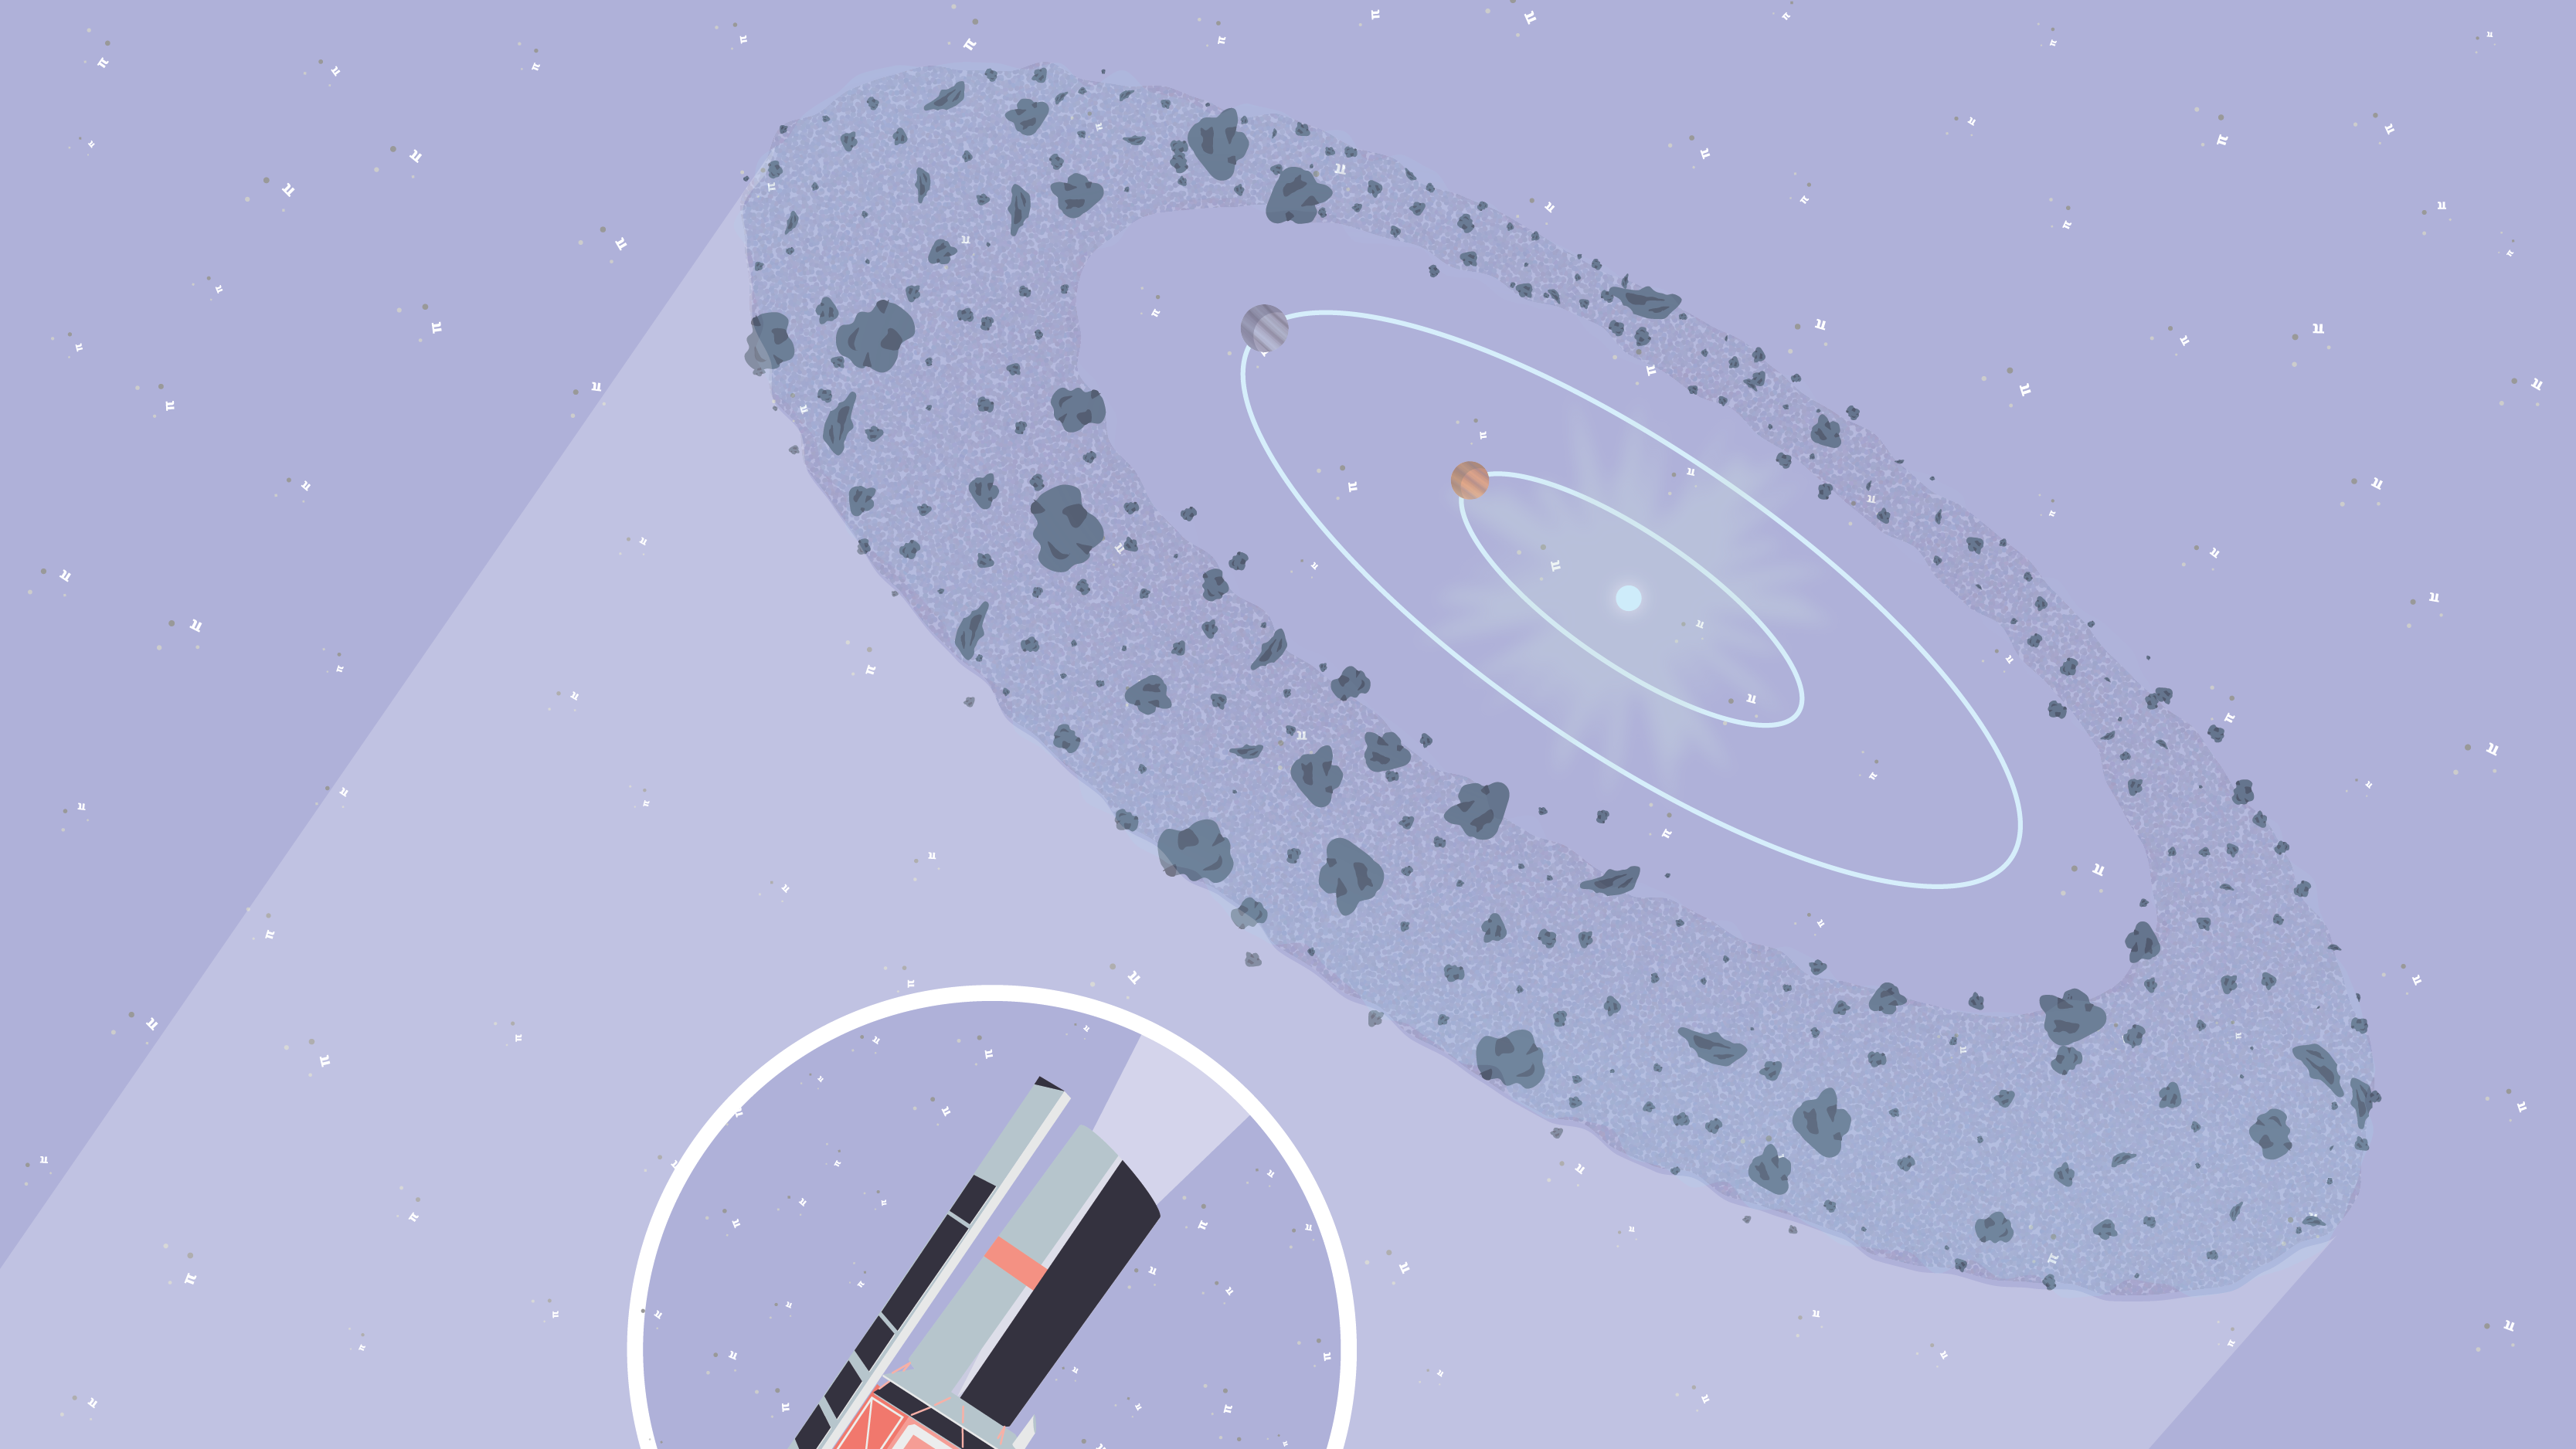 Illustration of two planets orbiting the star Beta Pictoris surrounded by a disk of debris. An inset illustration of the Spitzer space telescope shows a triangular beam representing the spacecraft's view of the disk